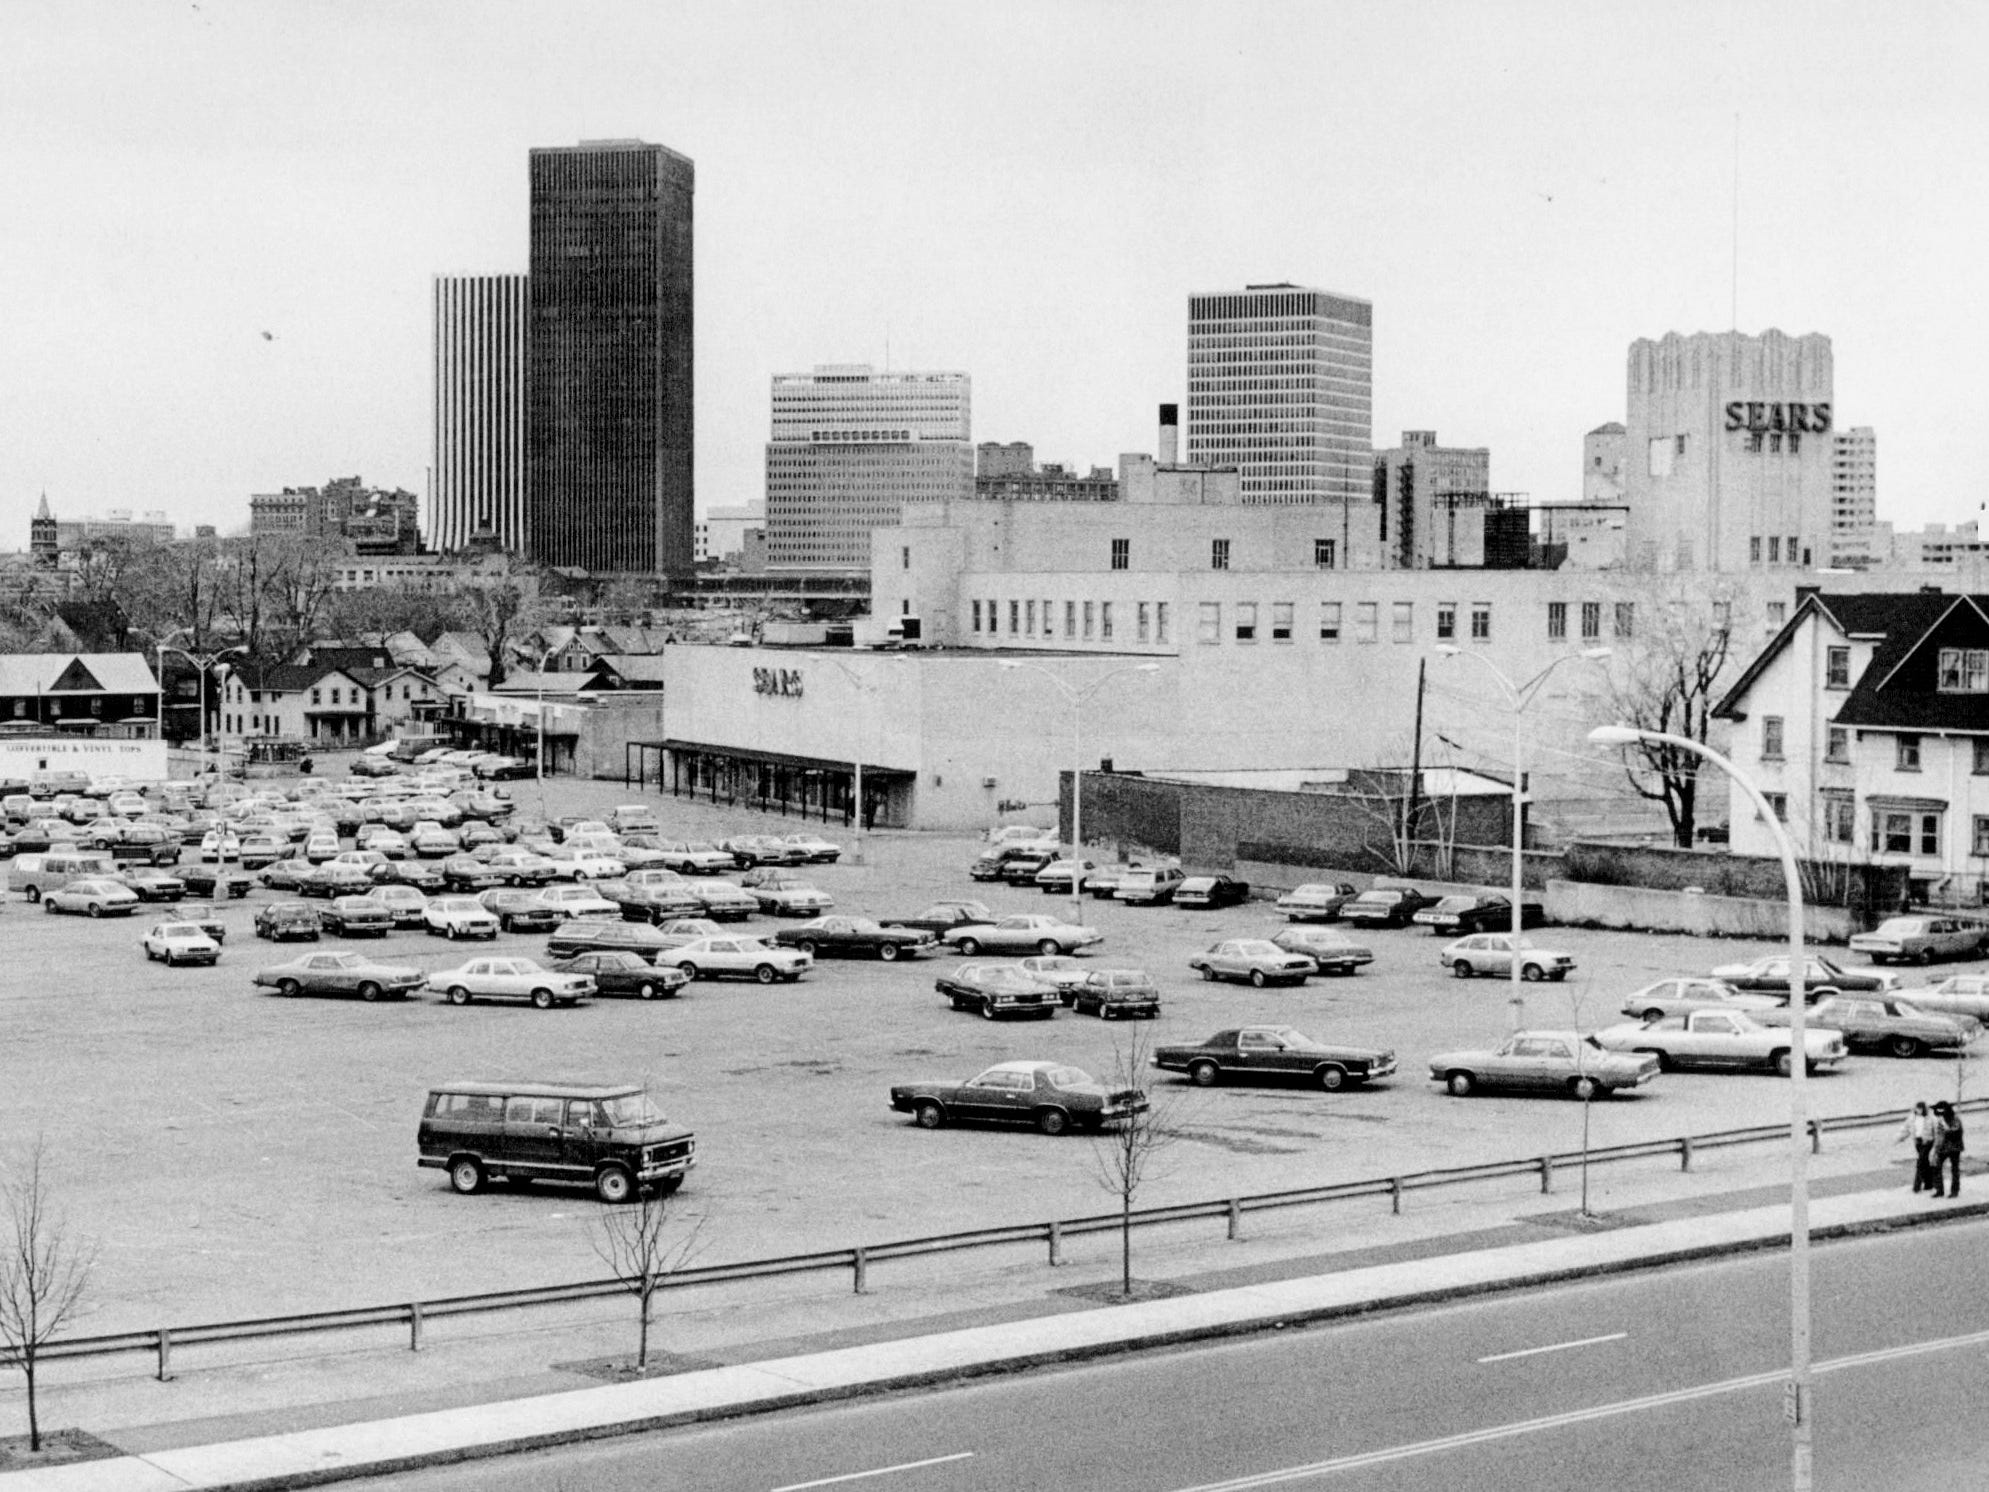 This 1981 photo shows the Sears building when it was located on Monroe Avenue in Rochester.